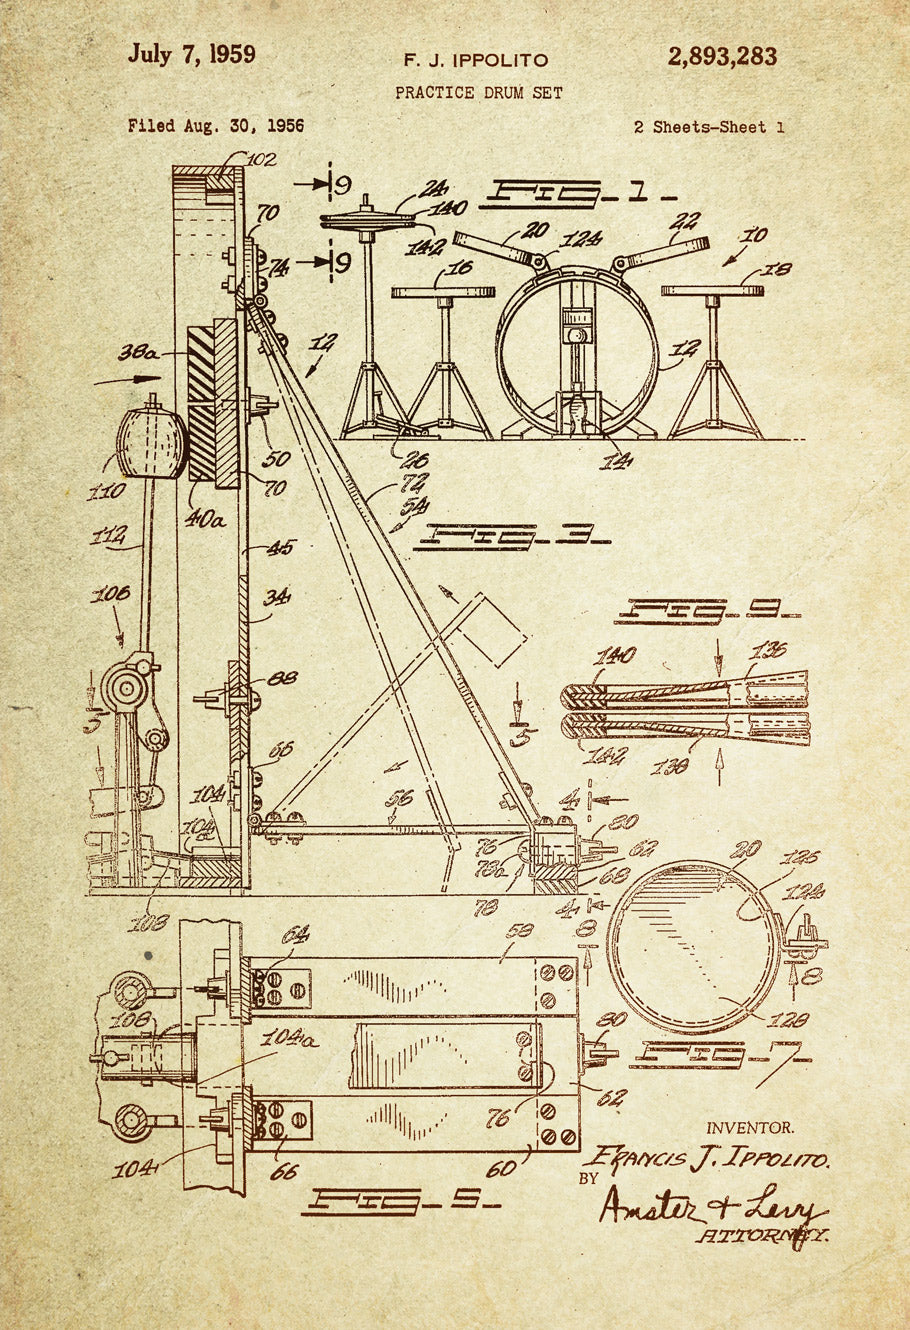 Drum Set Patent Poster Wall Decor (1959 by F.J. Ippolito)